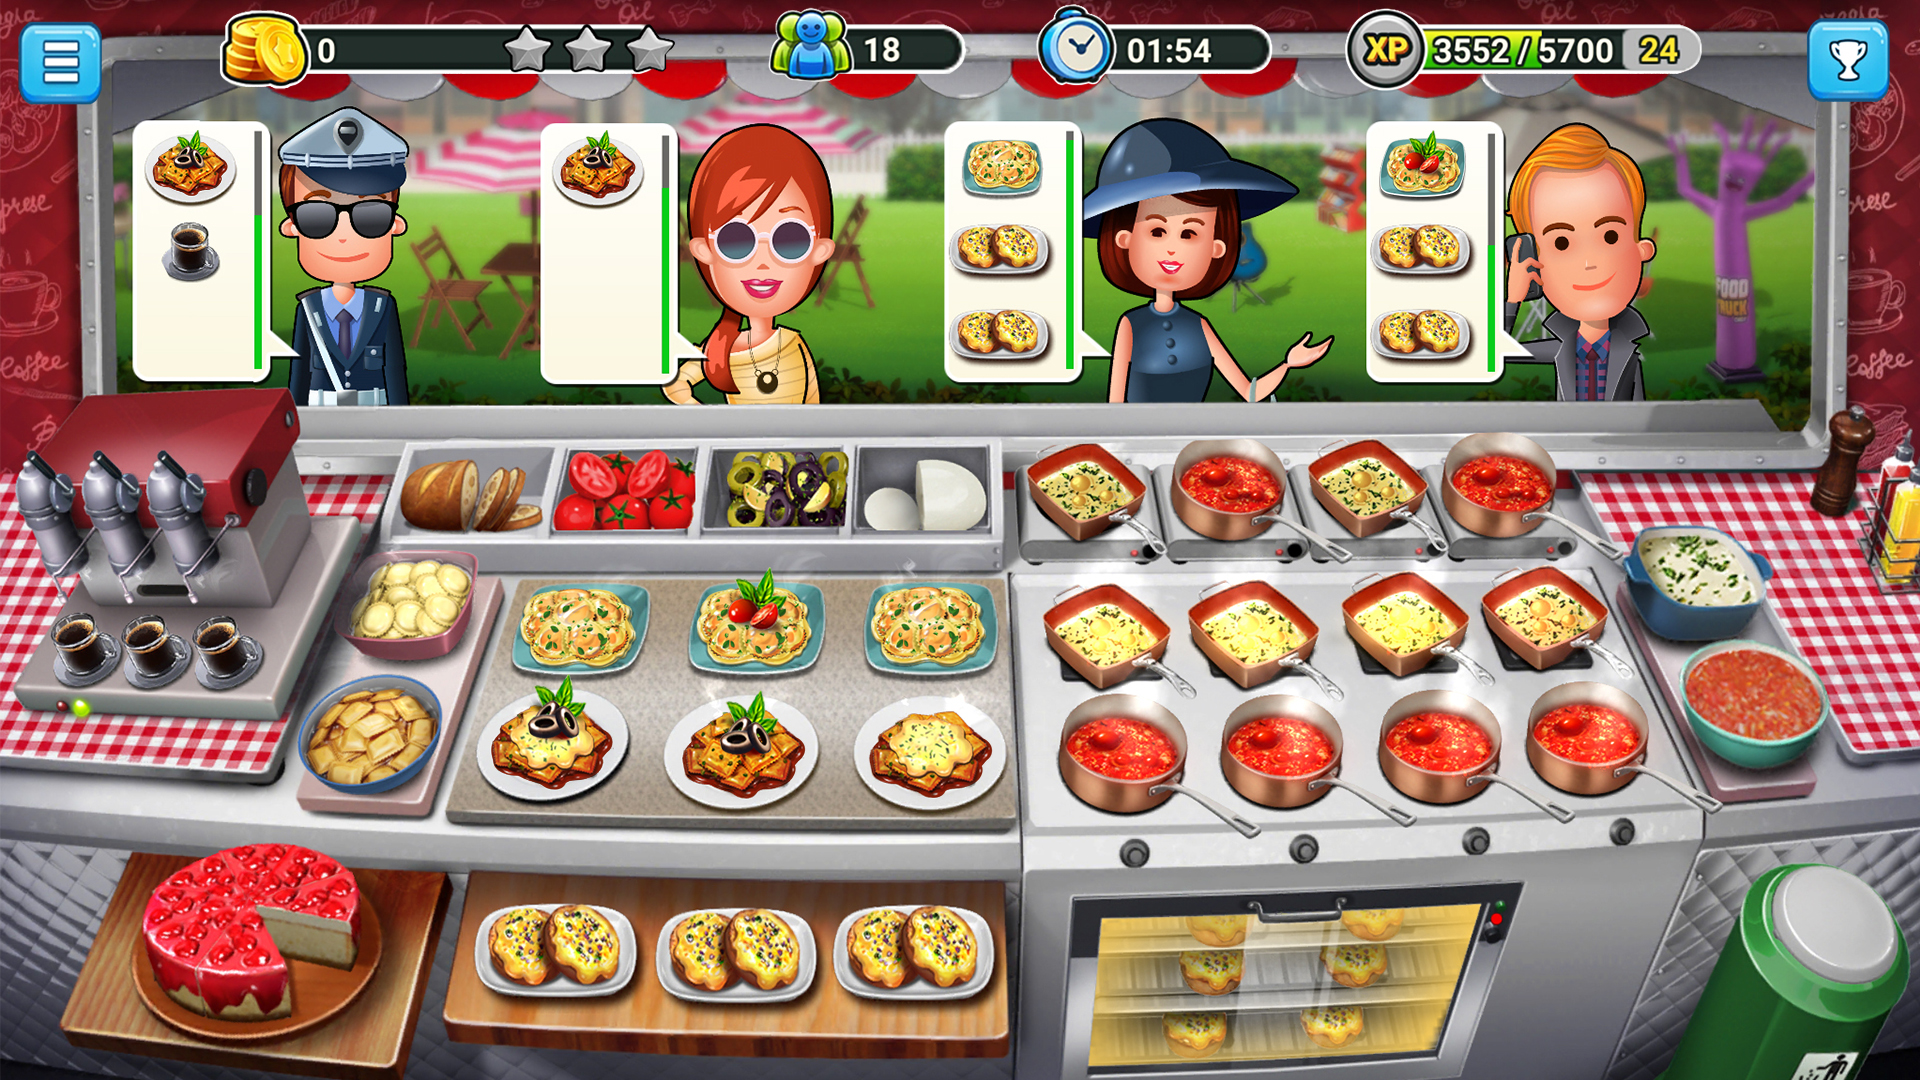 Cuisine Gameplay Tilting Point Invests 132 Million In User Acquisition For Mobile